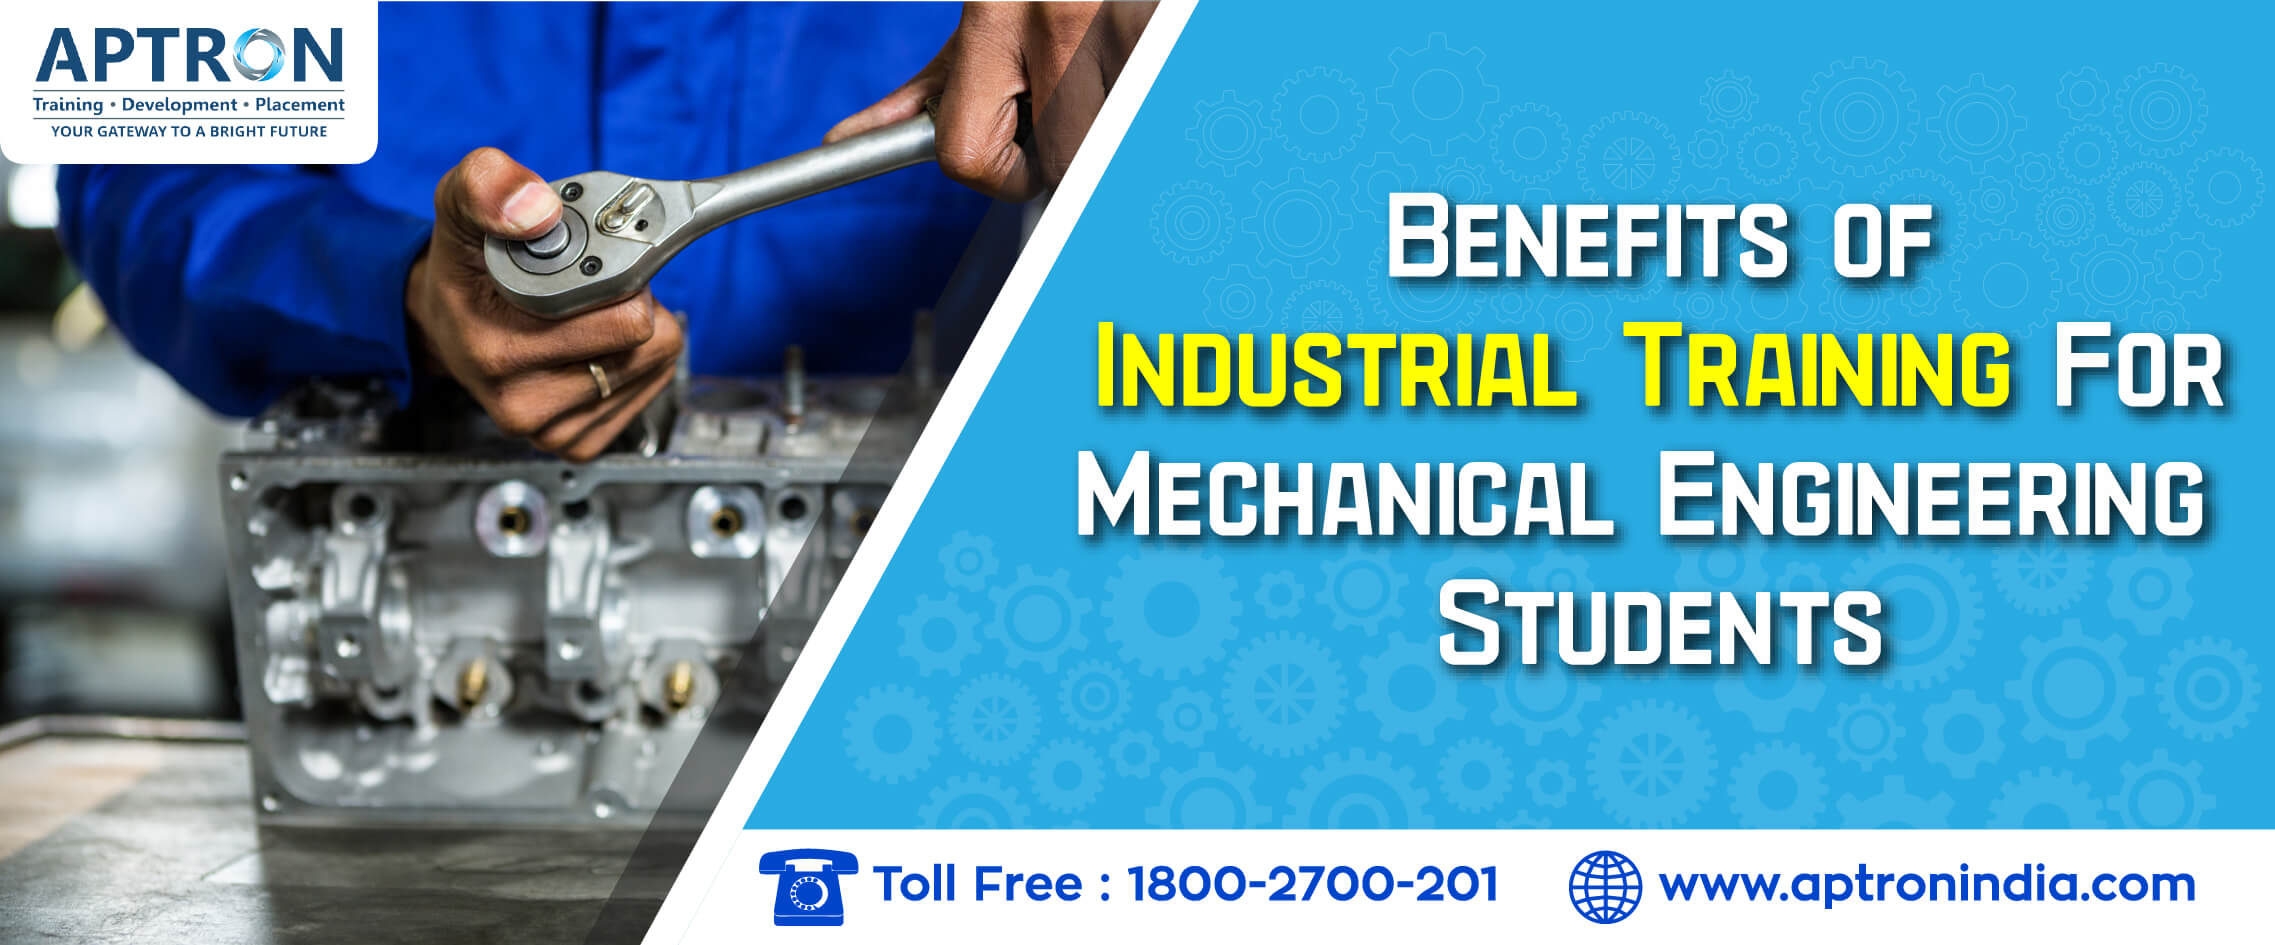 Benefits of Industrial Training for Mechanical Engineering Students